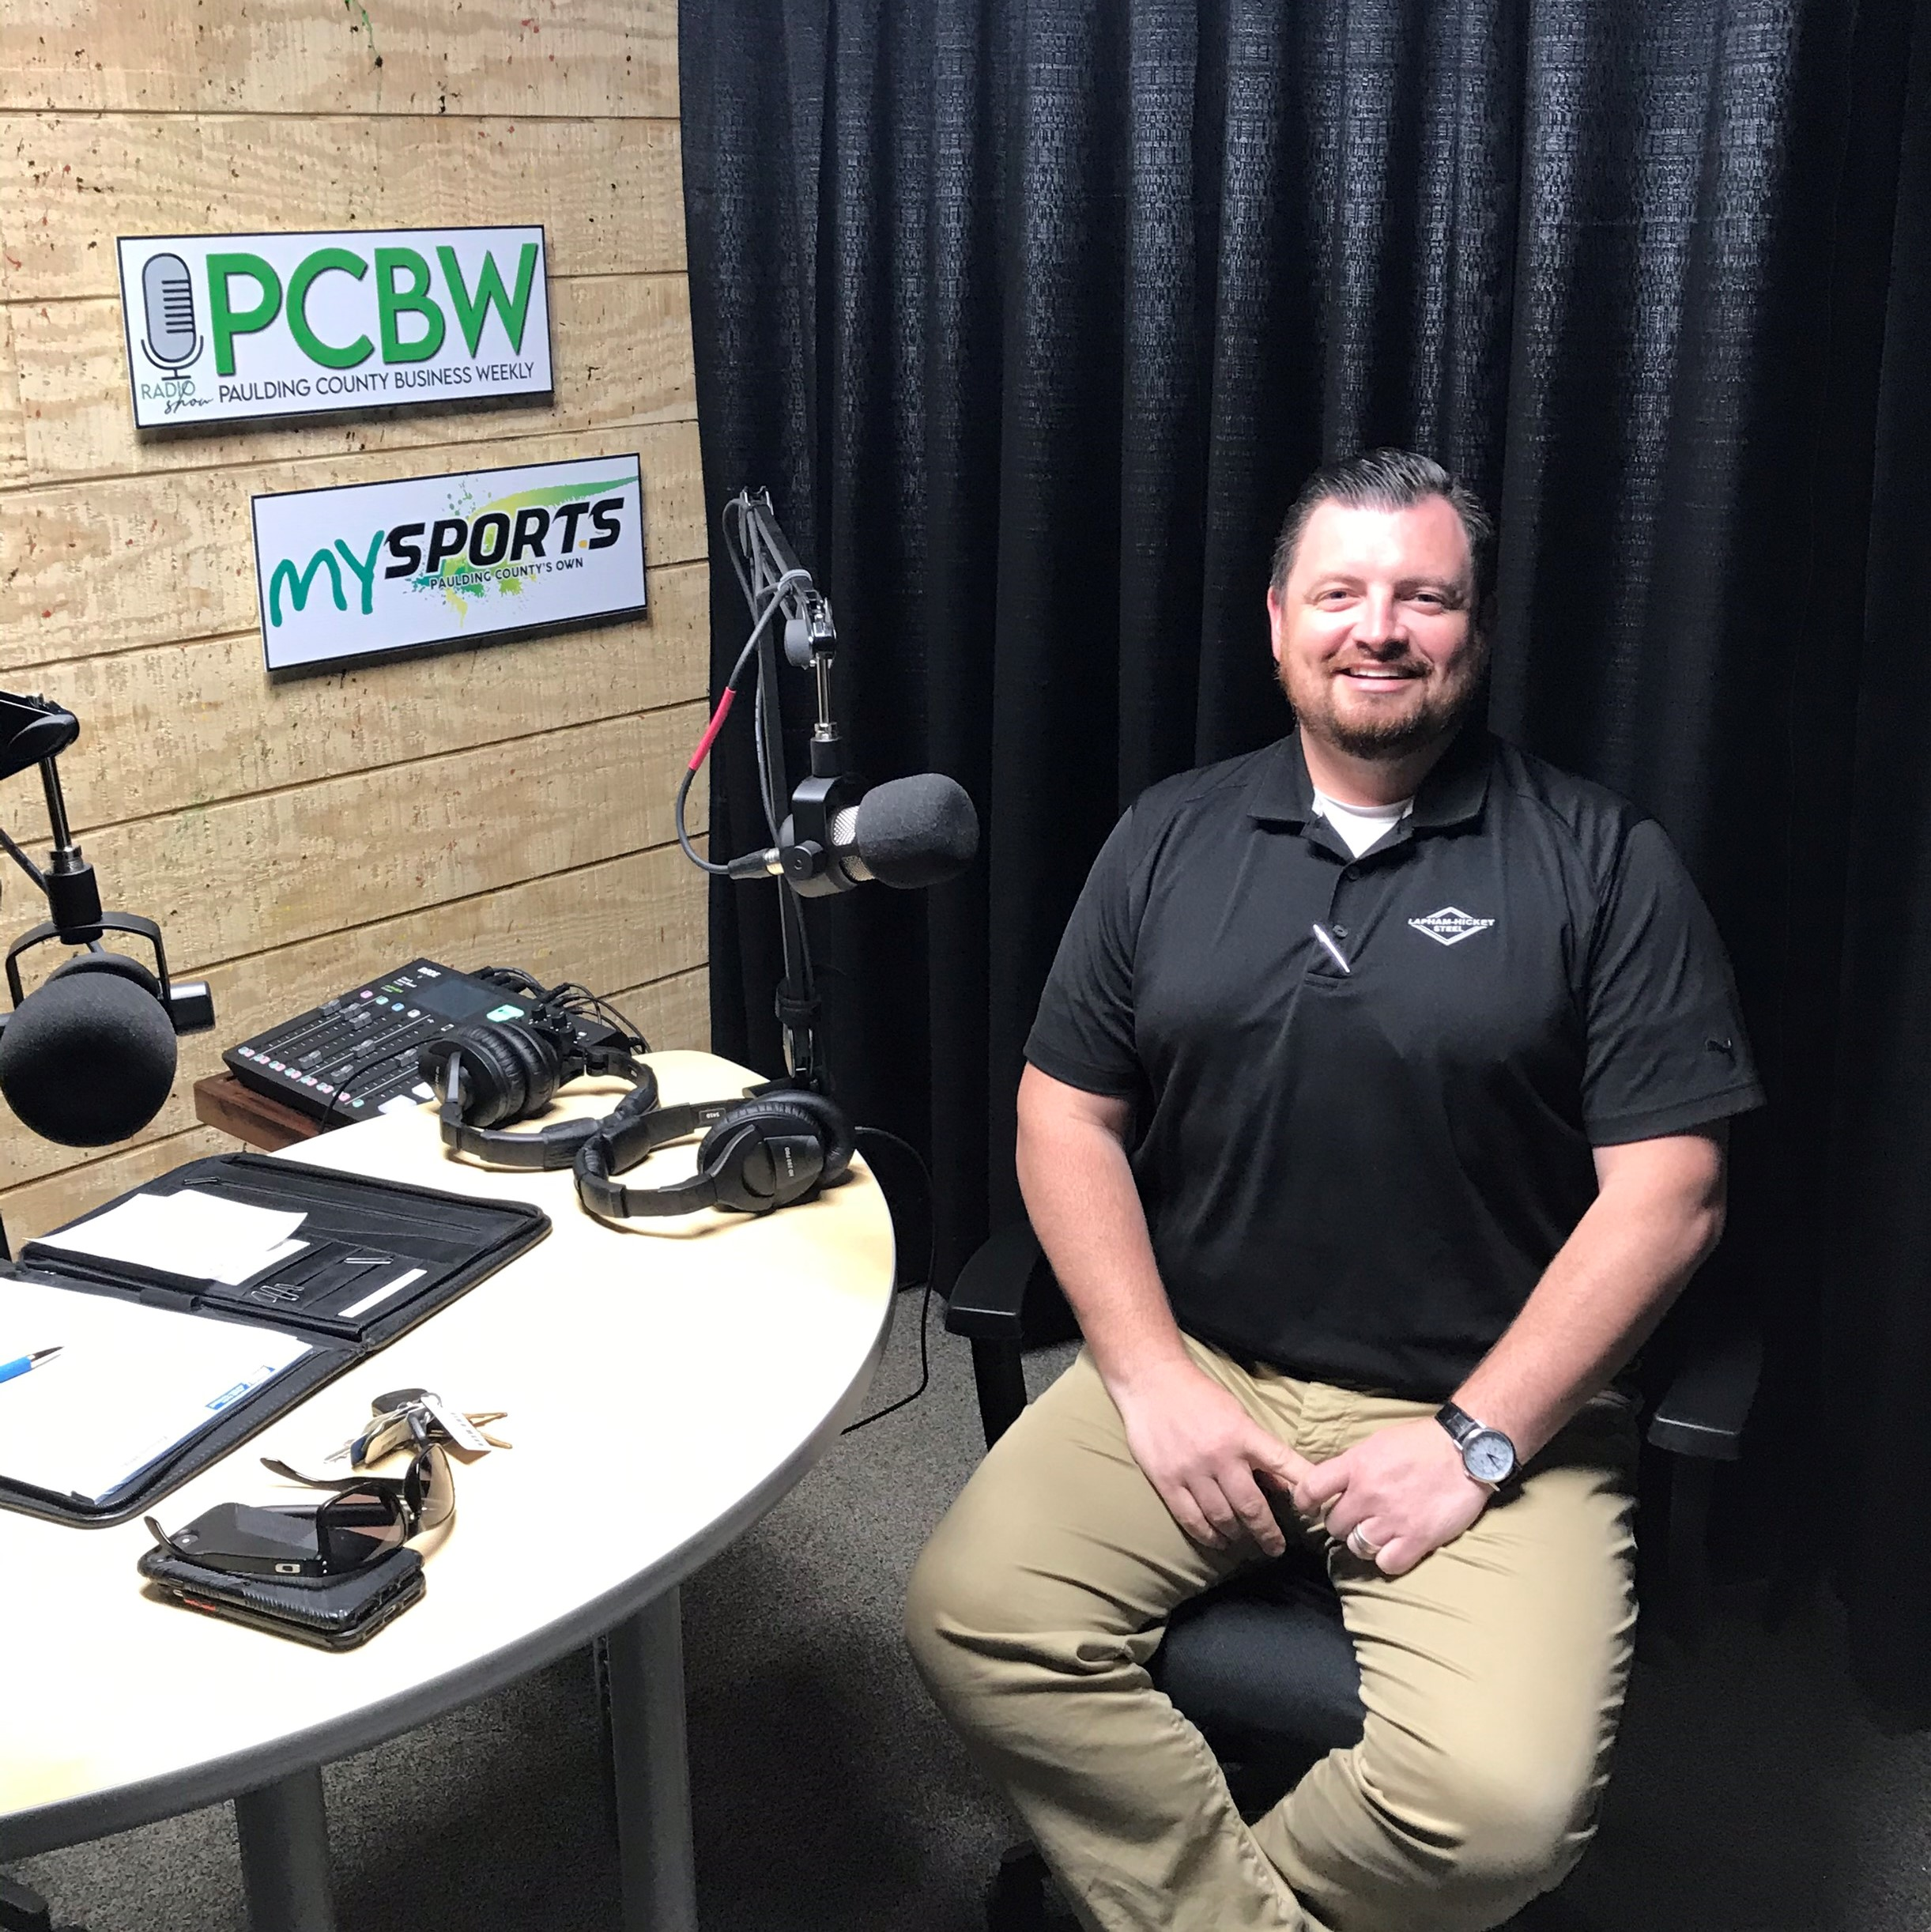 Sixth Episode Now Airing on PCBW!